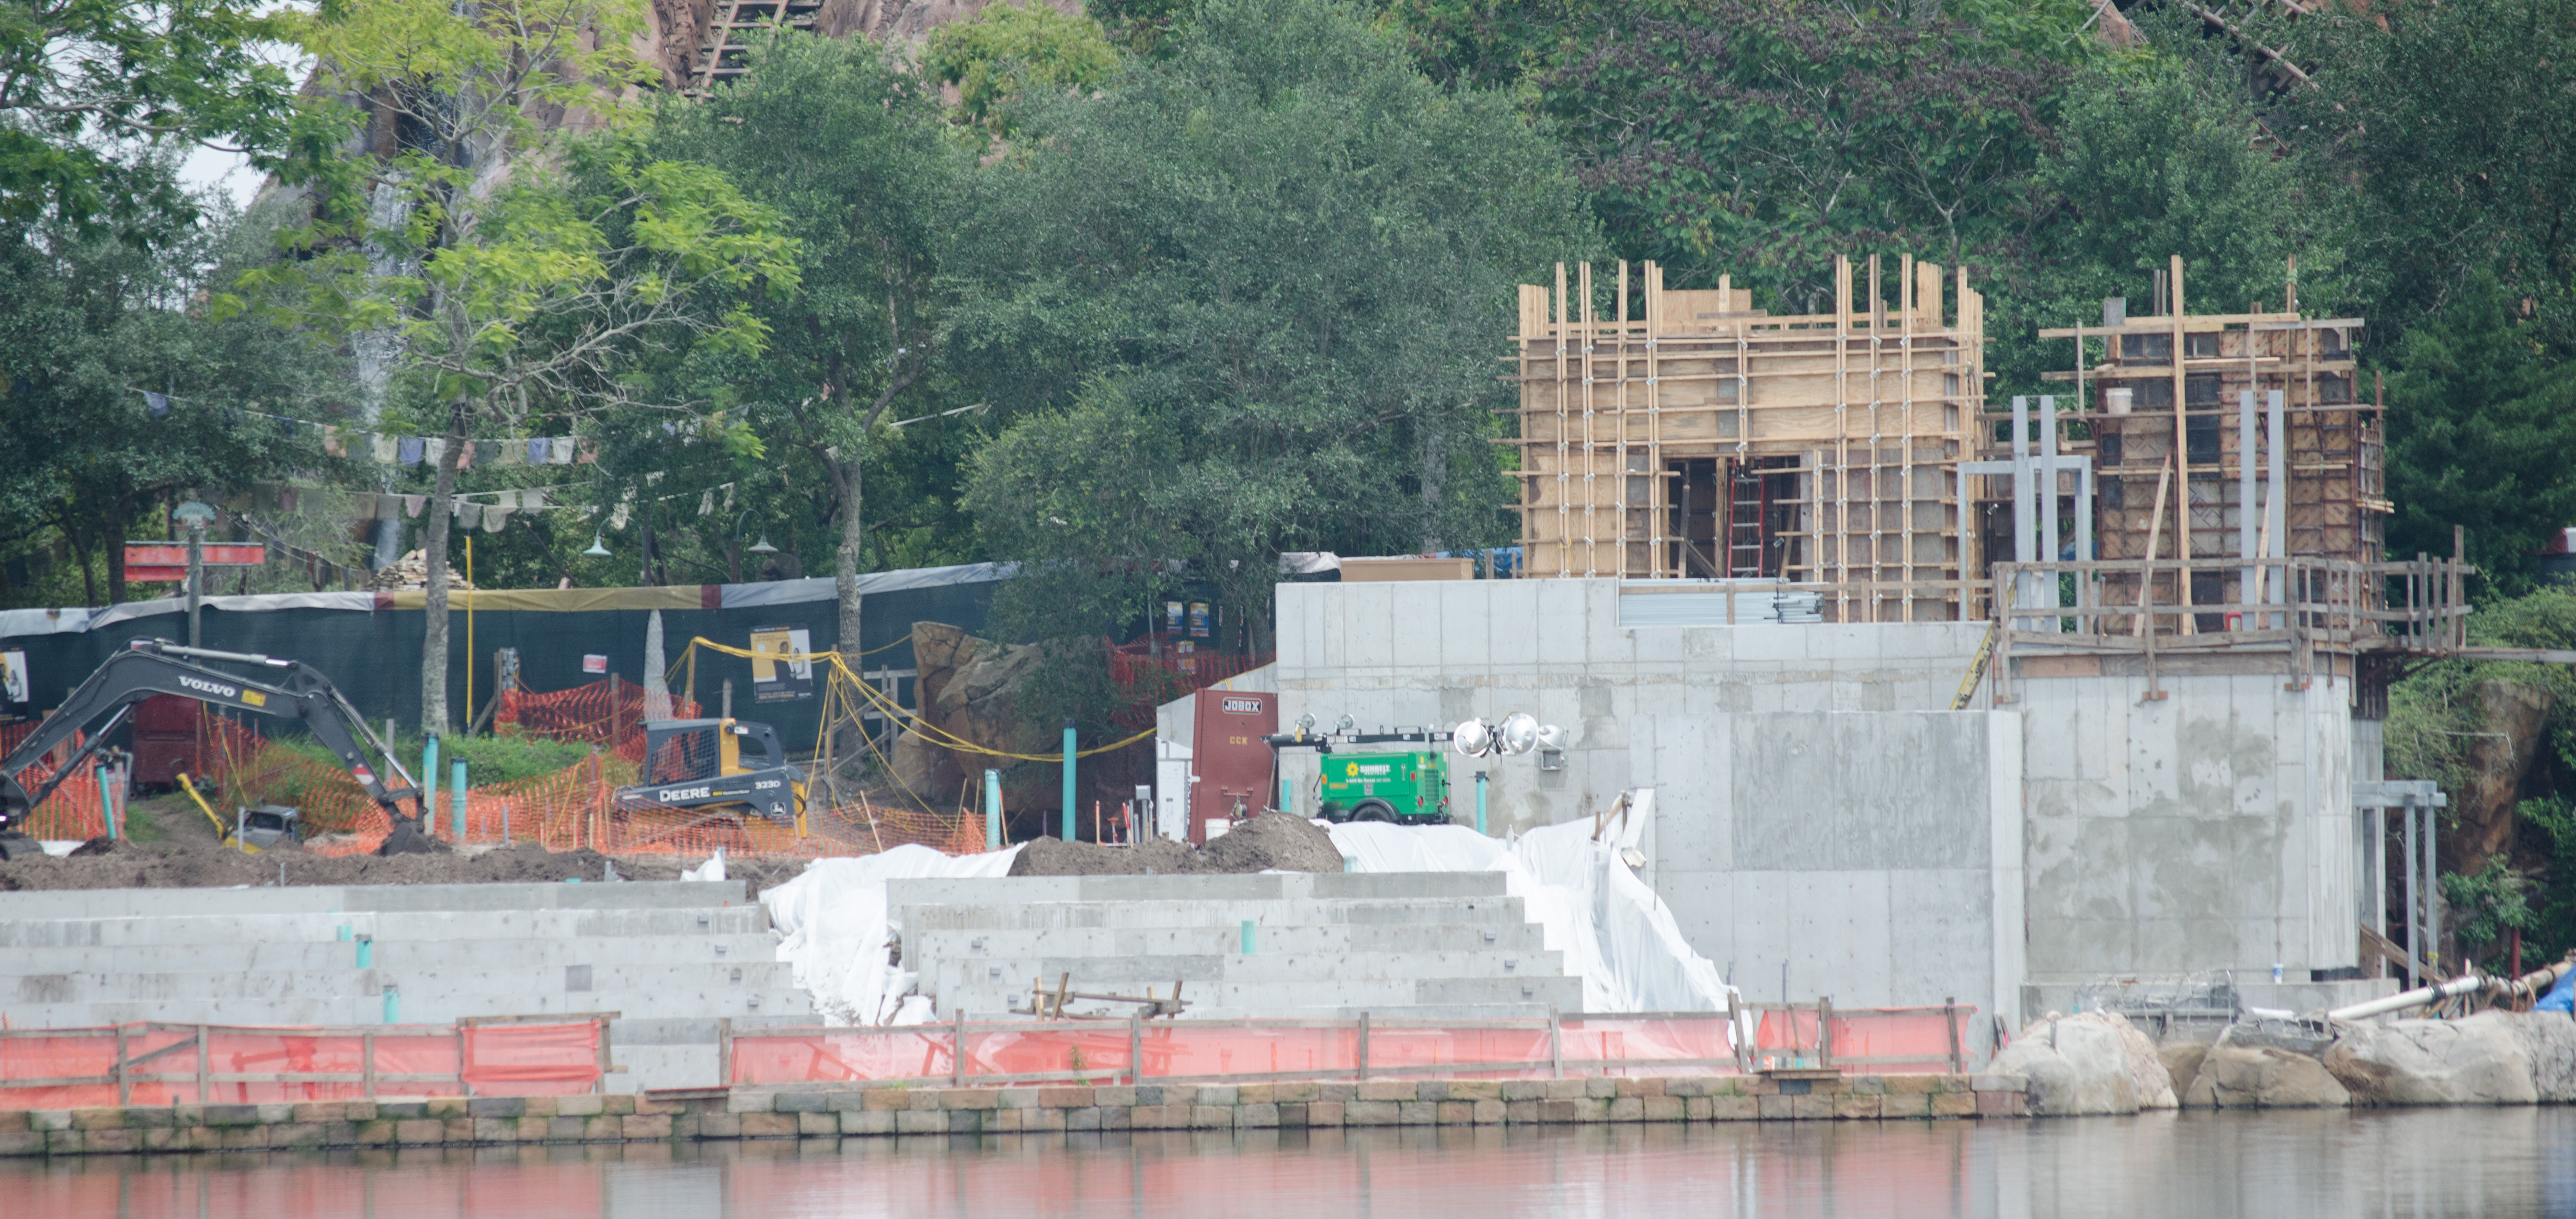 AnimalKingdom_08292015-29